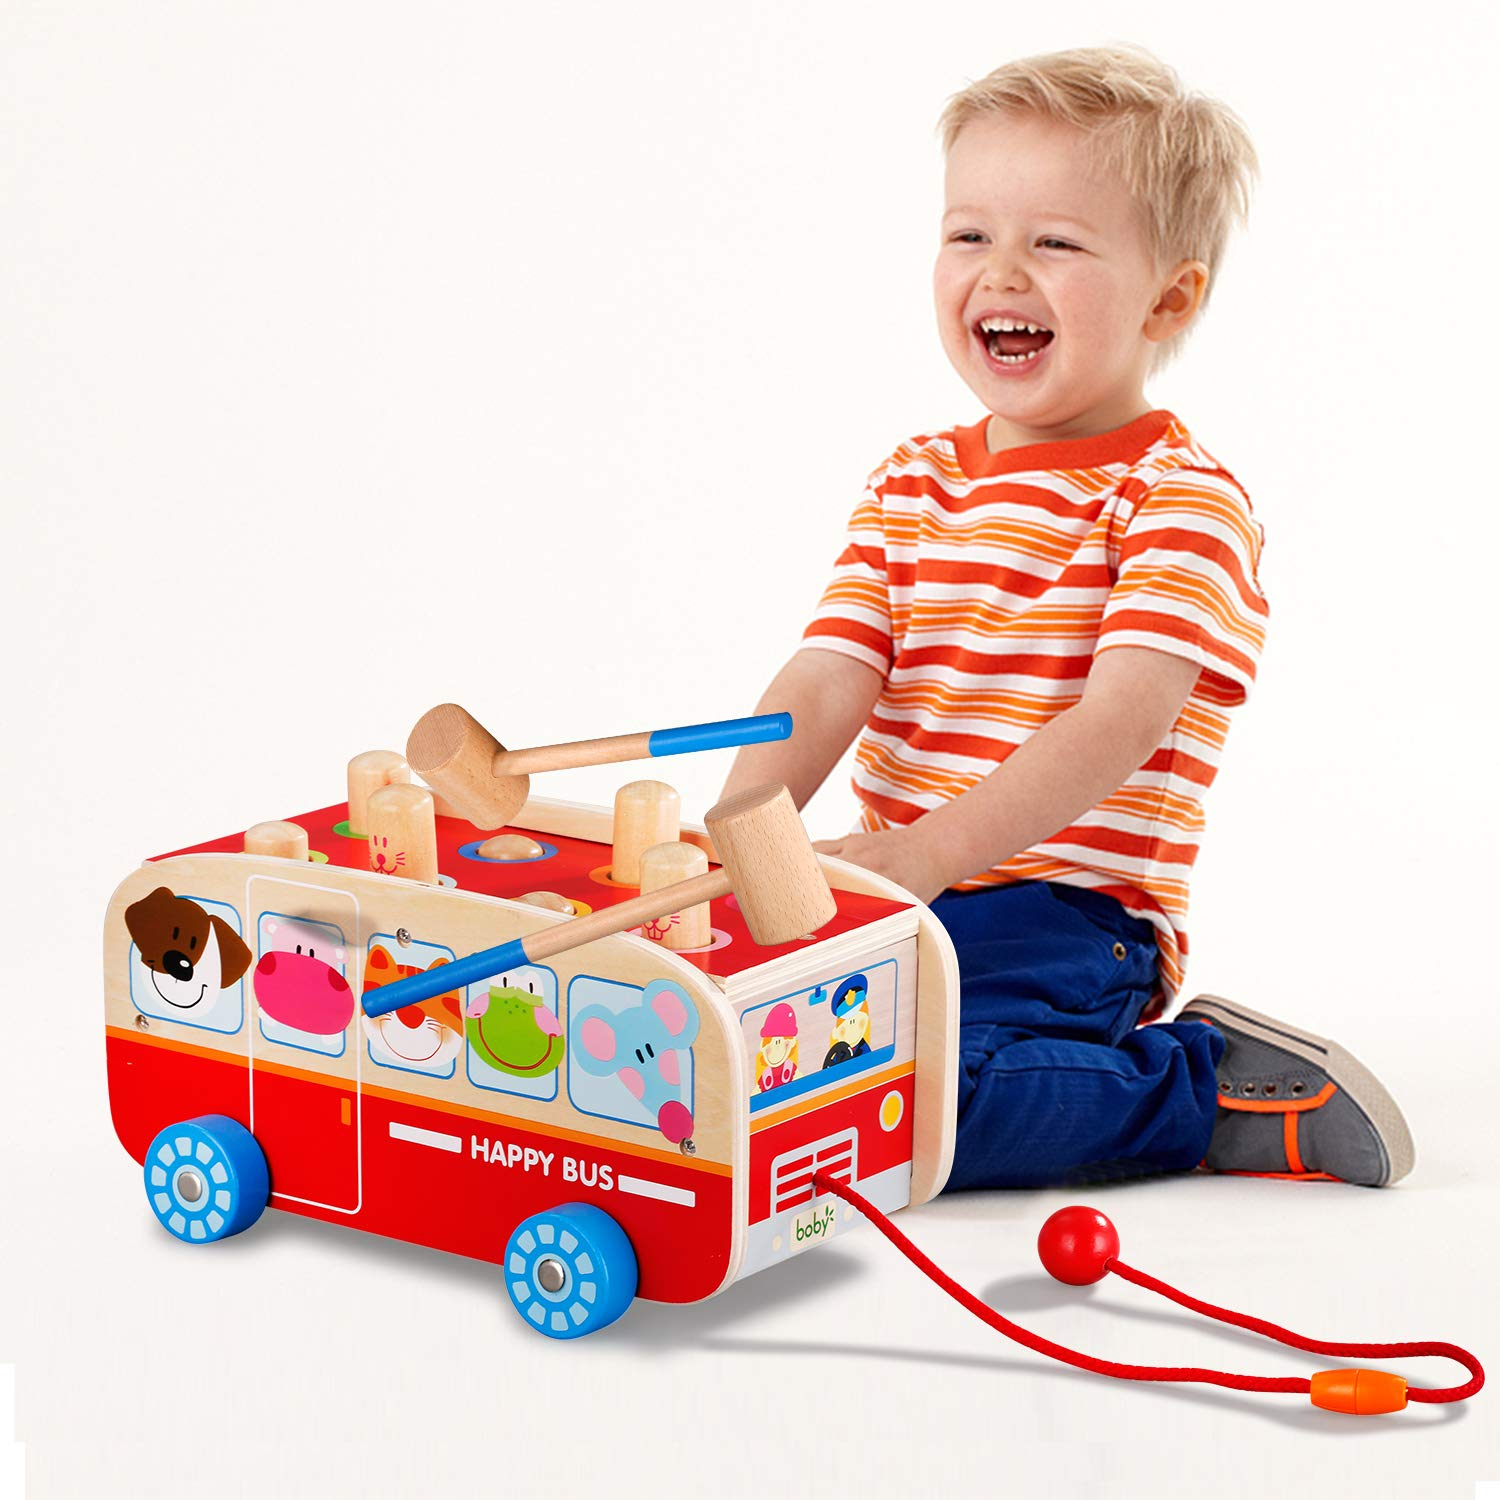 Tohibee Toddler Toys Pounding Bus Wooden Toy Early Educational Development for Toddlers Preschool Kids